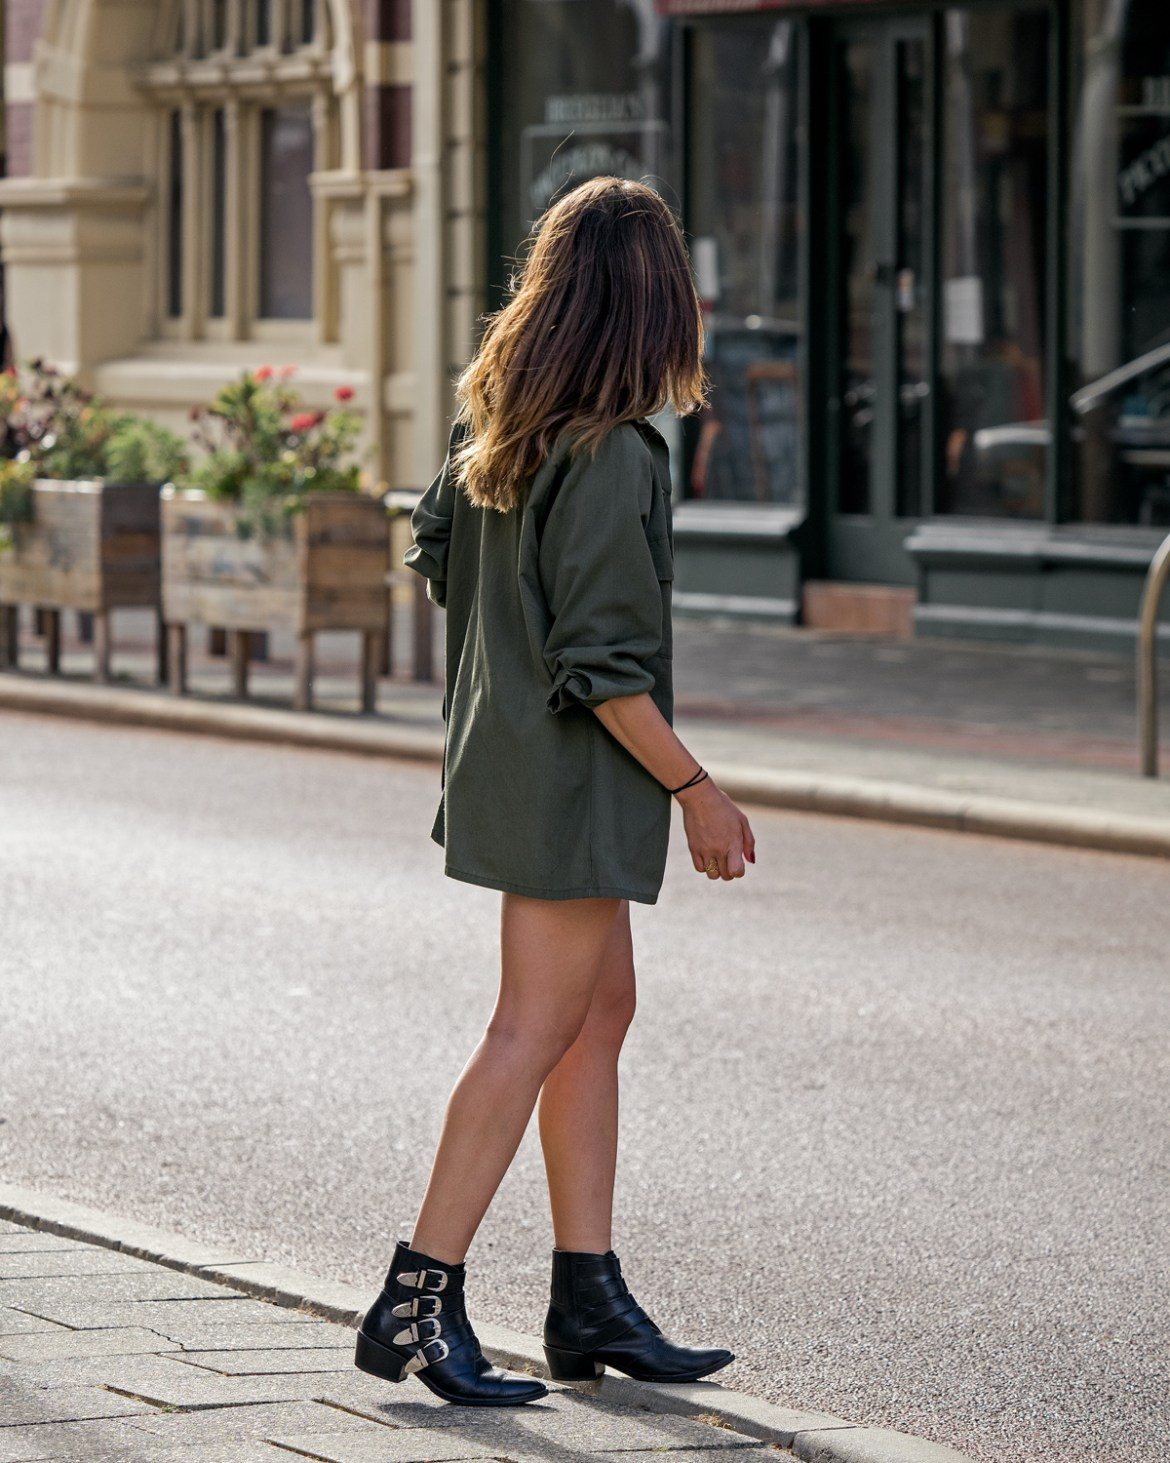 Toga boots and army jacket worn by Jenelle Witty of Inspiring Wit fashion and travel blog in Fremantle